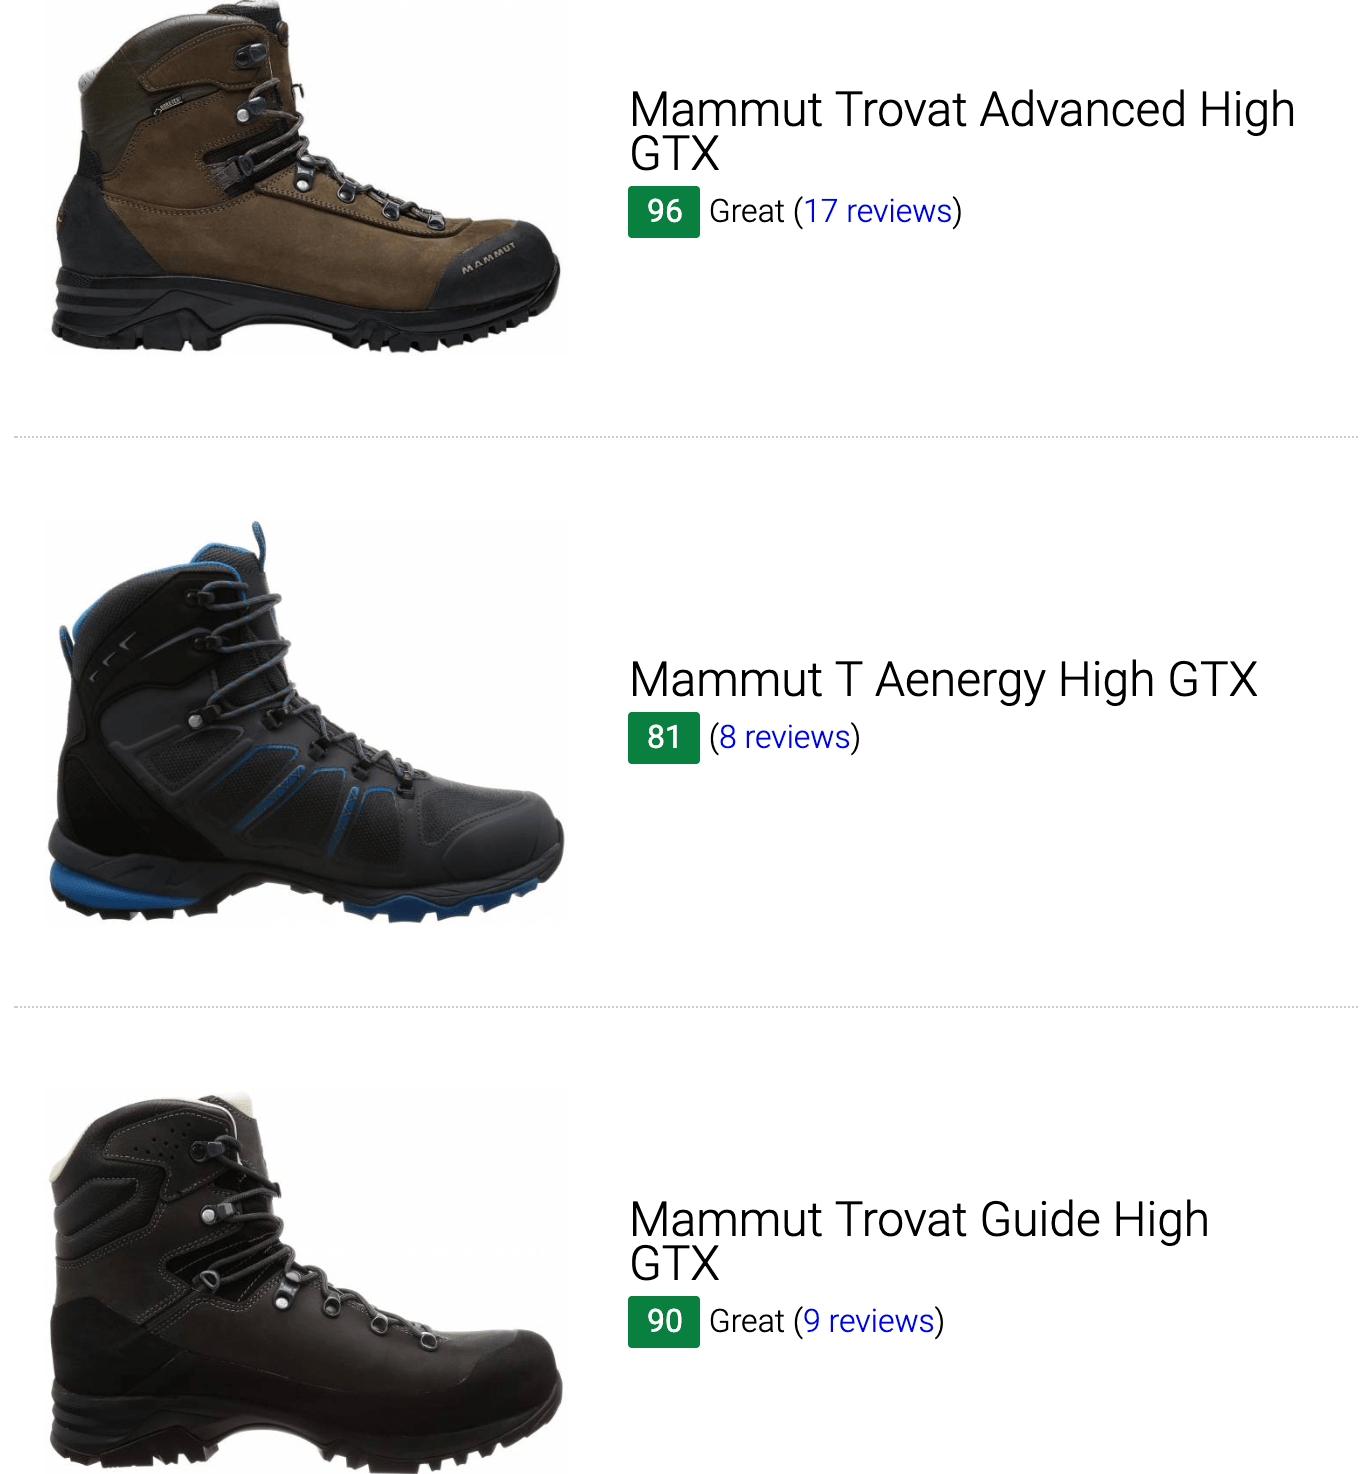 Best Mammut hiking boots